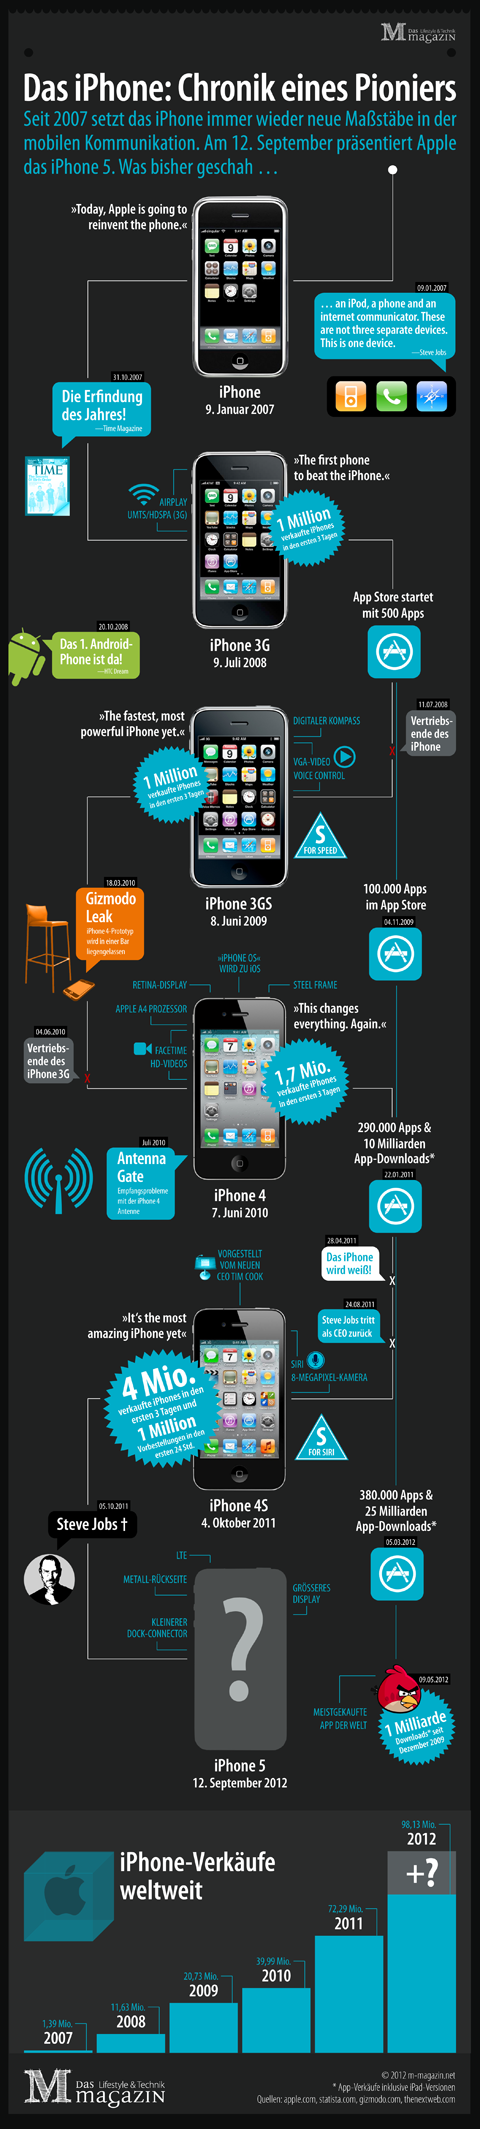 Infografik iPhone Apple Geschichte